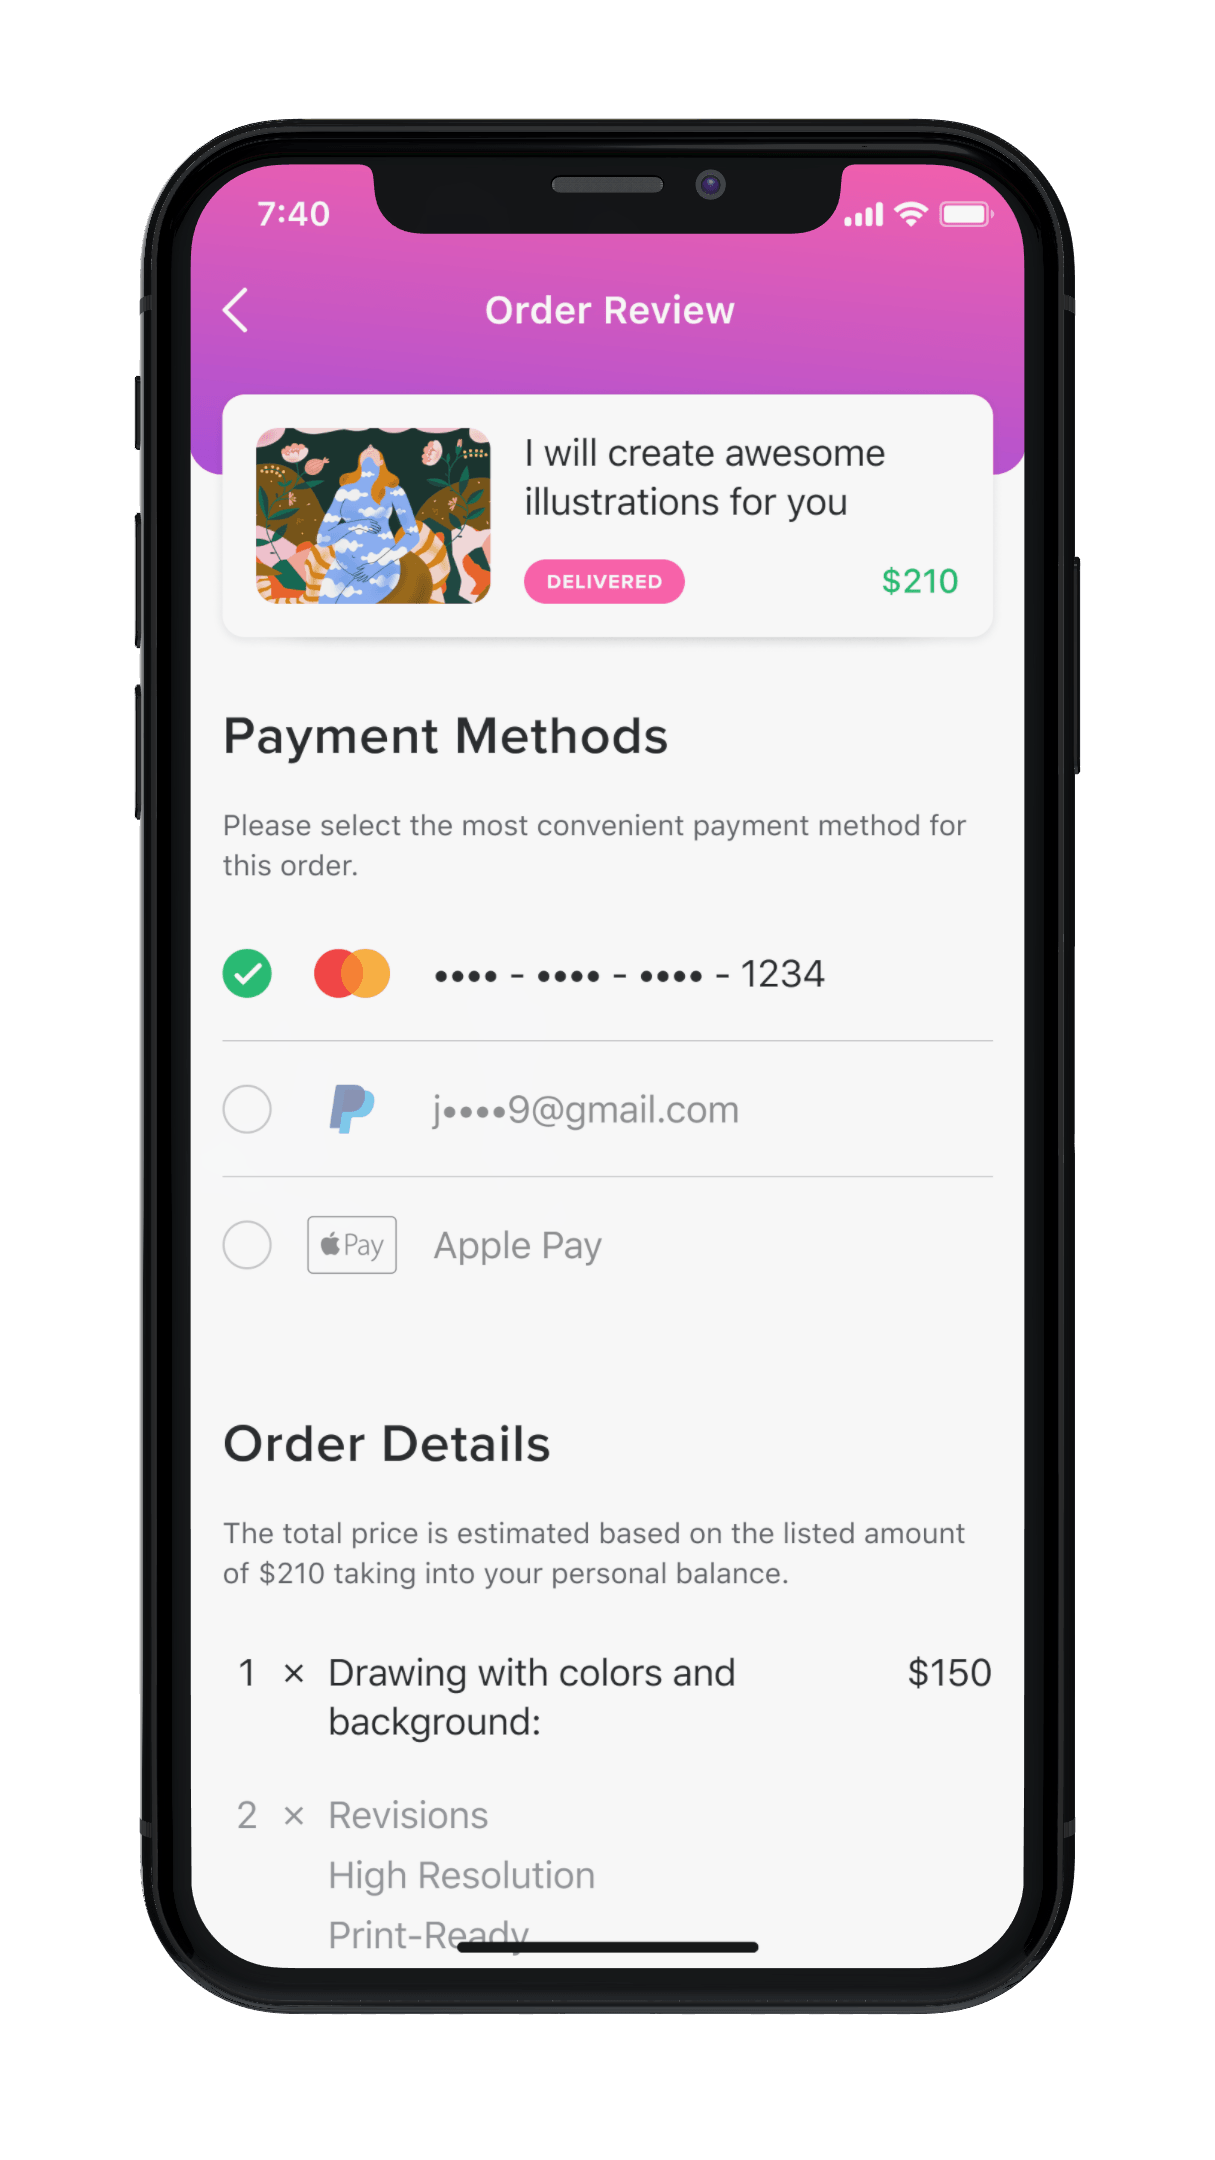 orderreview_11